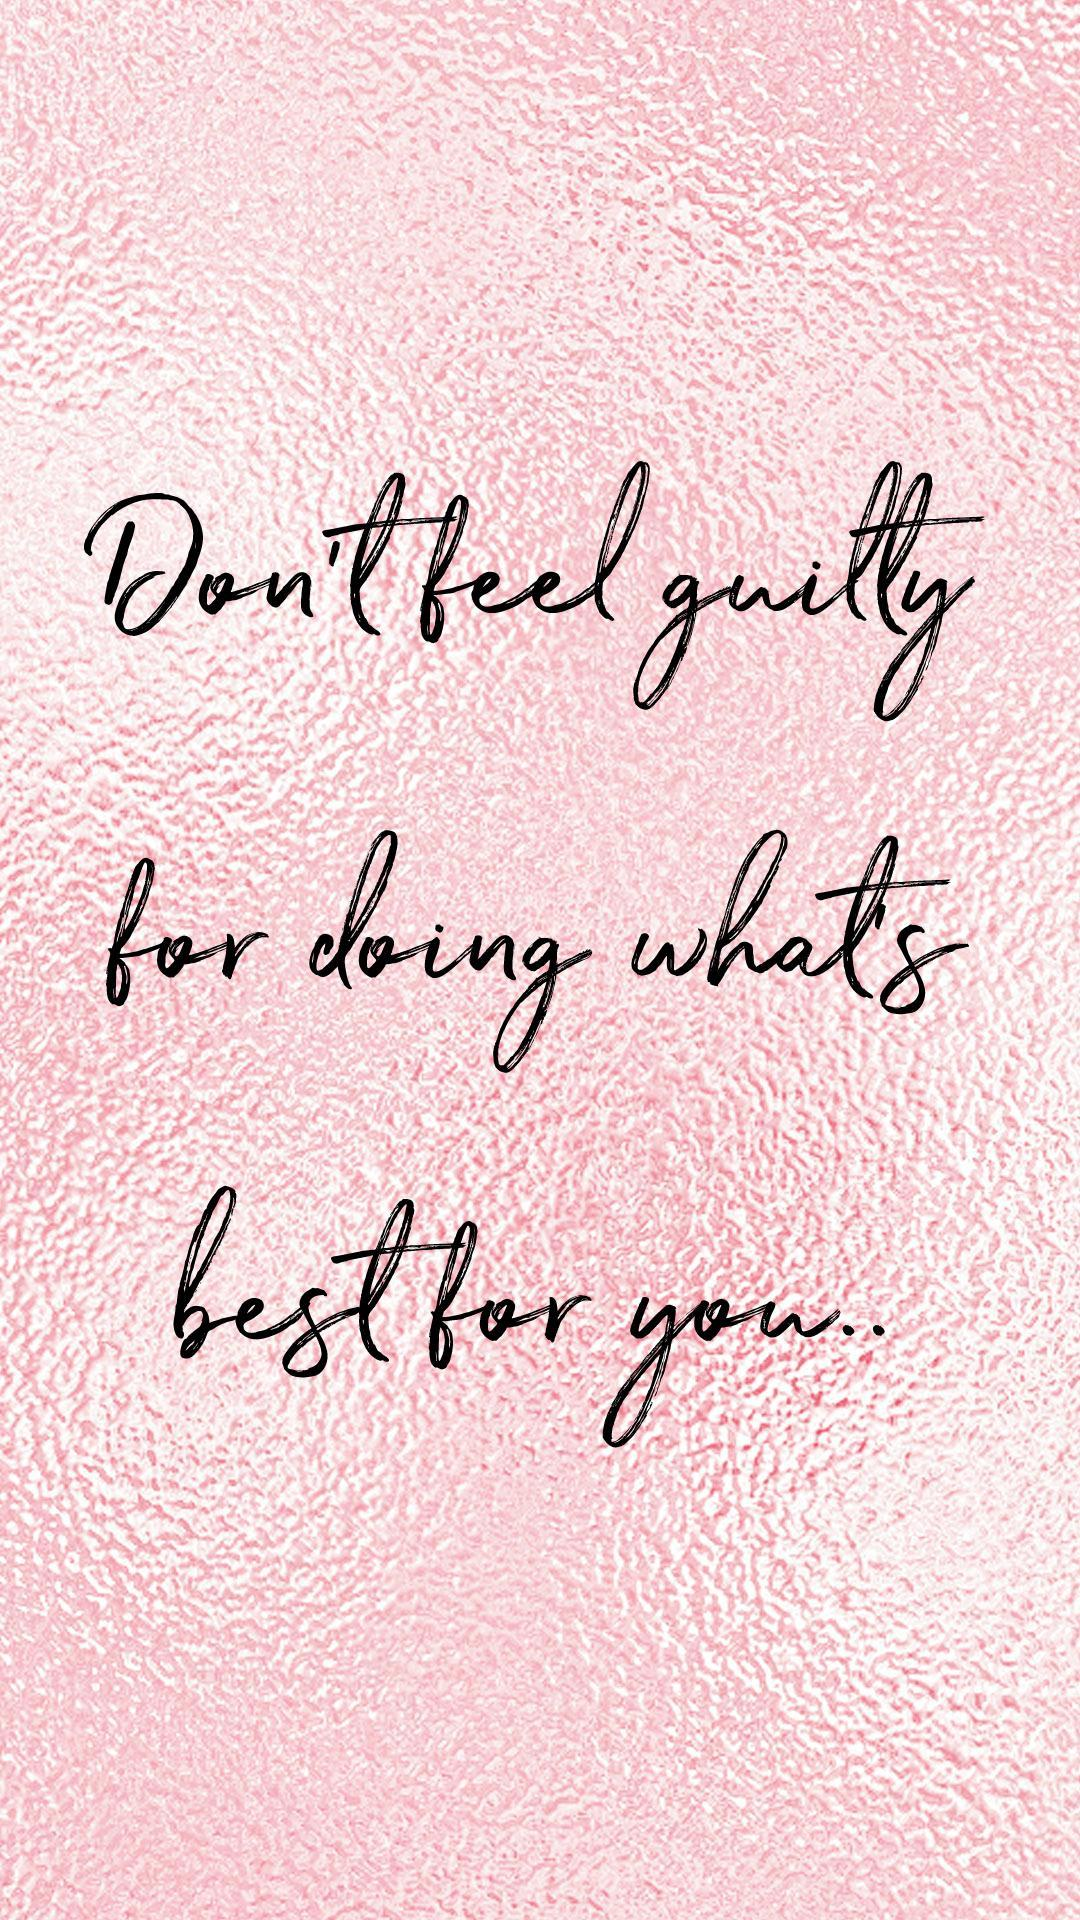 Don't feel guilty for doing what's best for you.